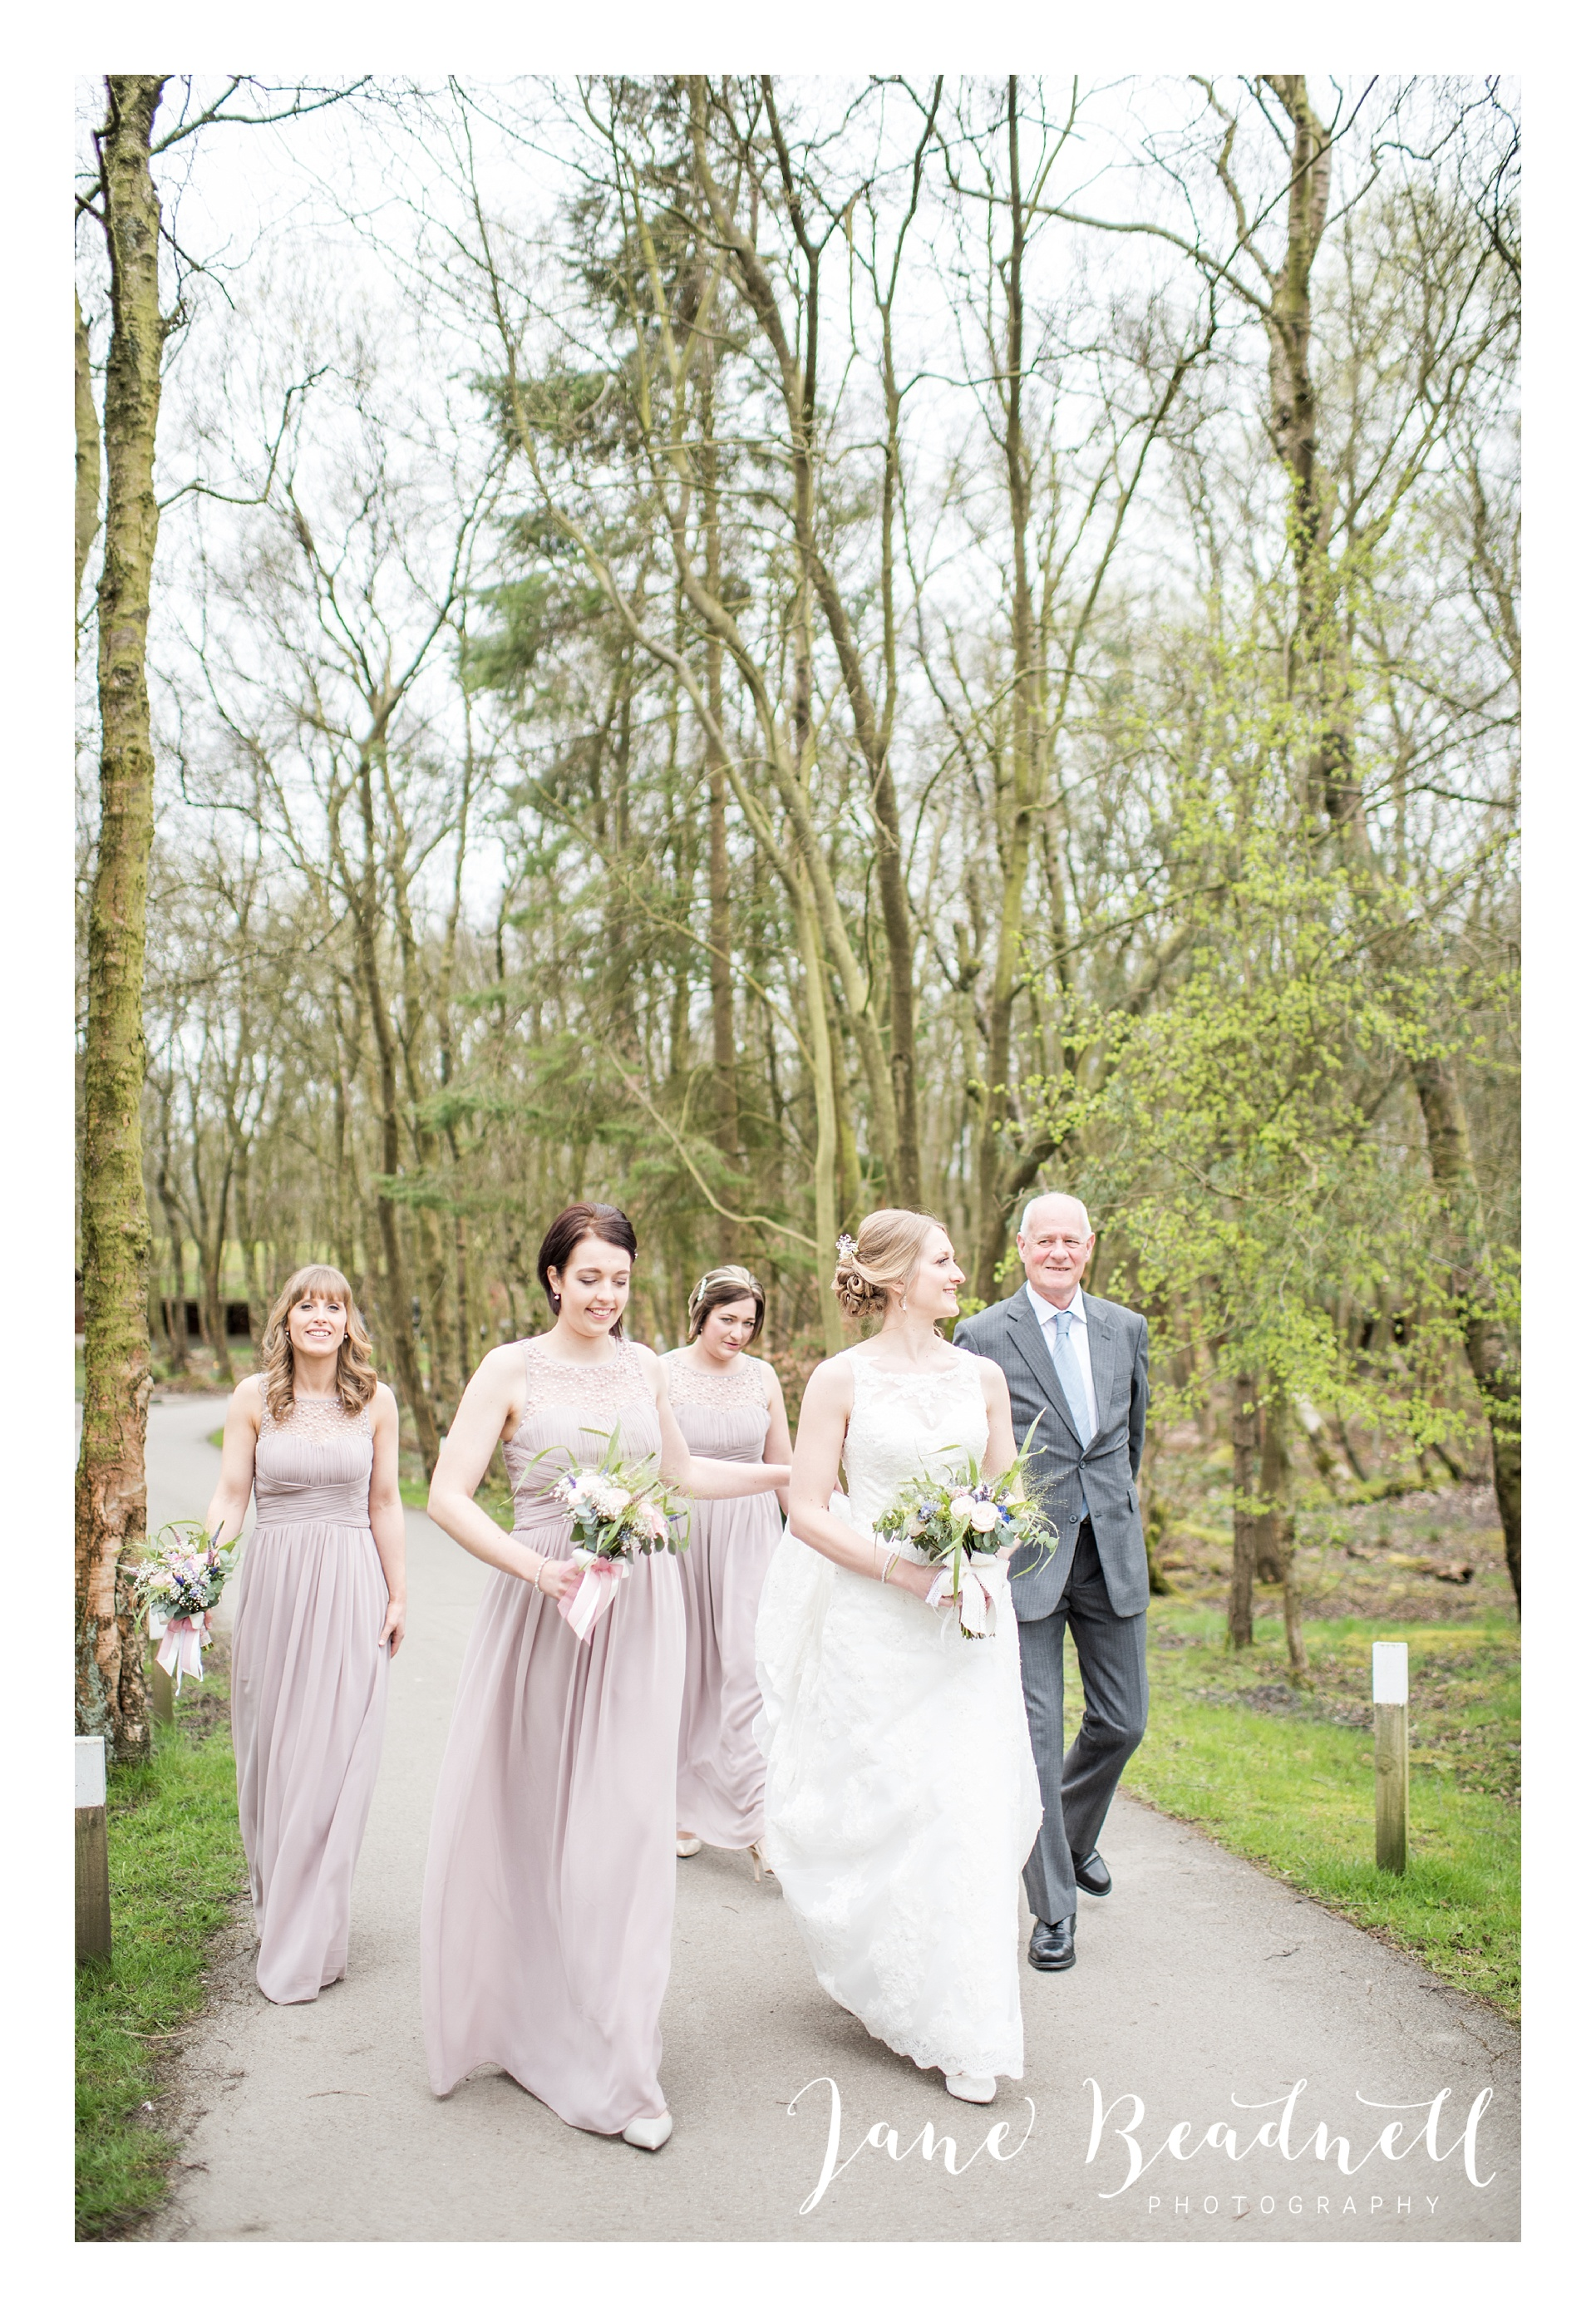 Otley Chevin Lodge wedding photography by Jane Beadnell Photography Leeds_0040